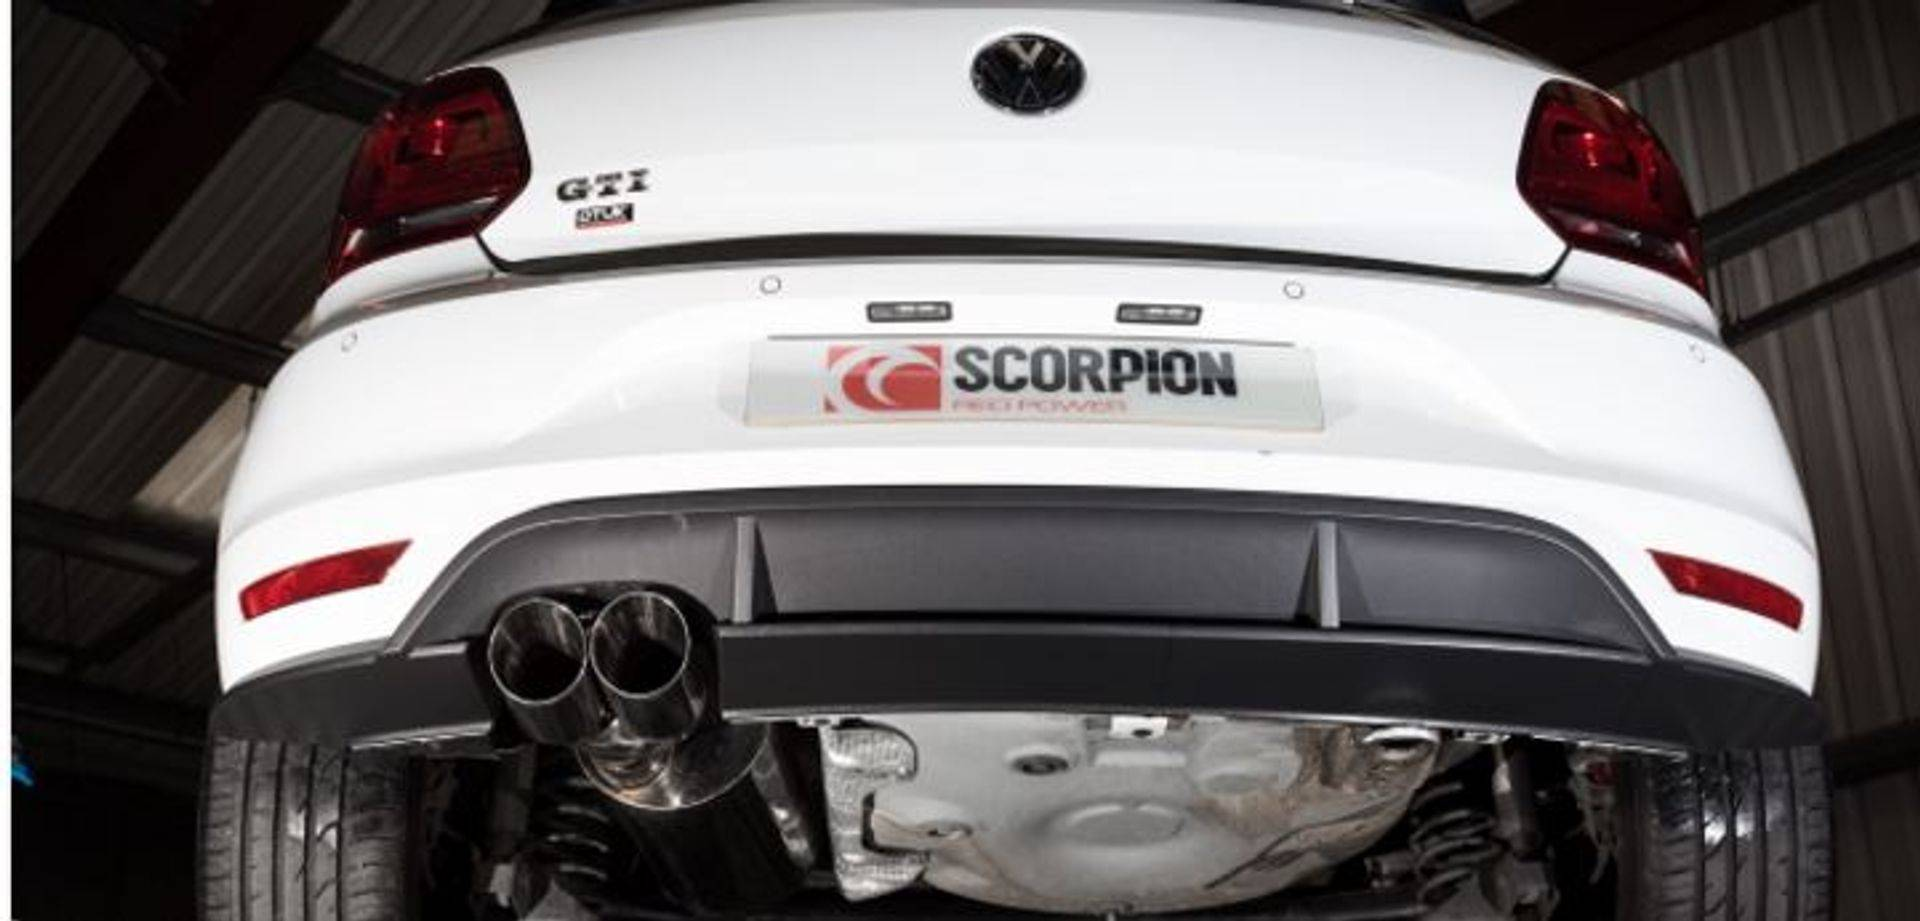 Scorpion VW polo Under development